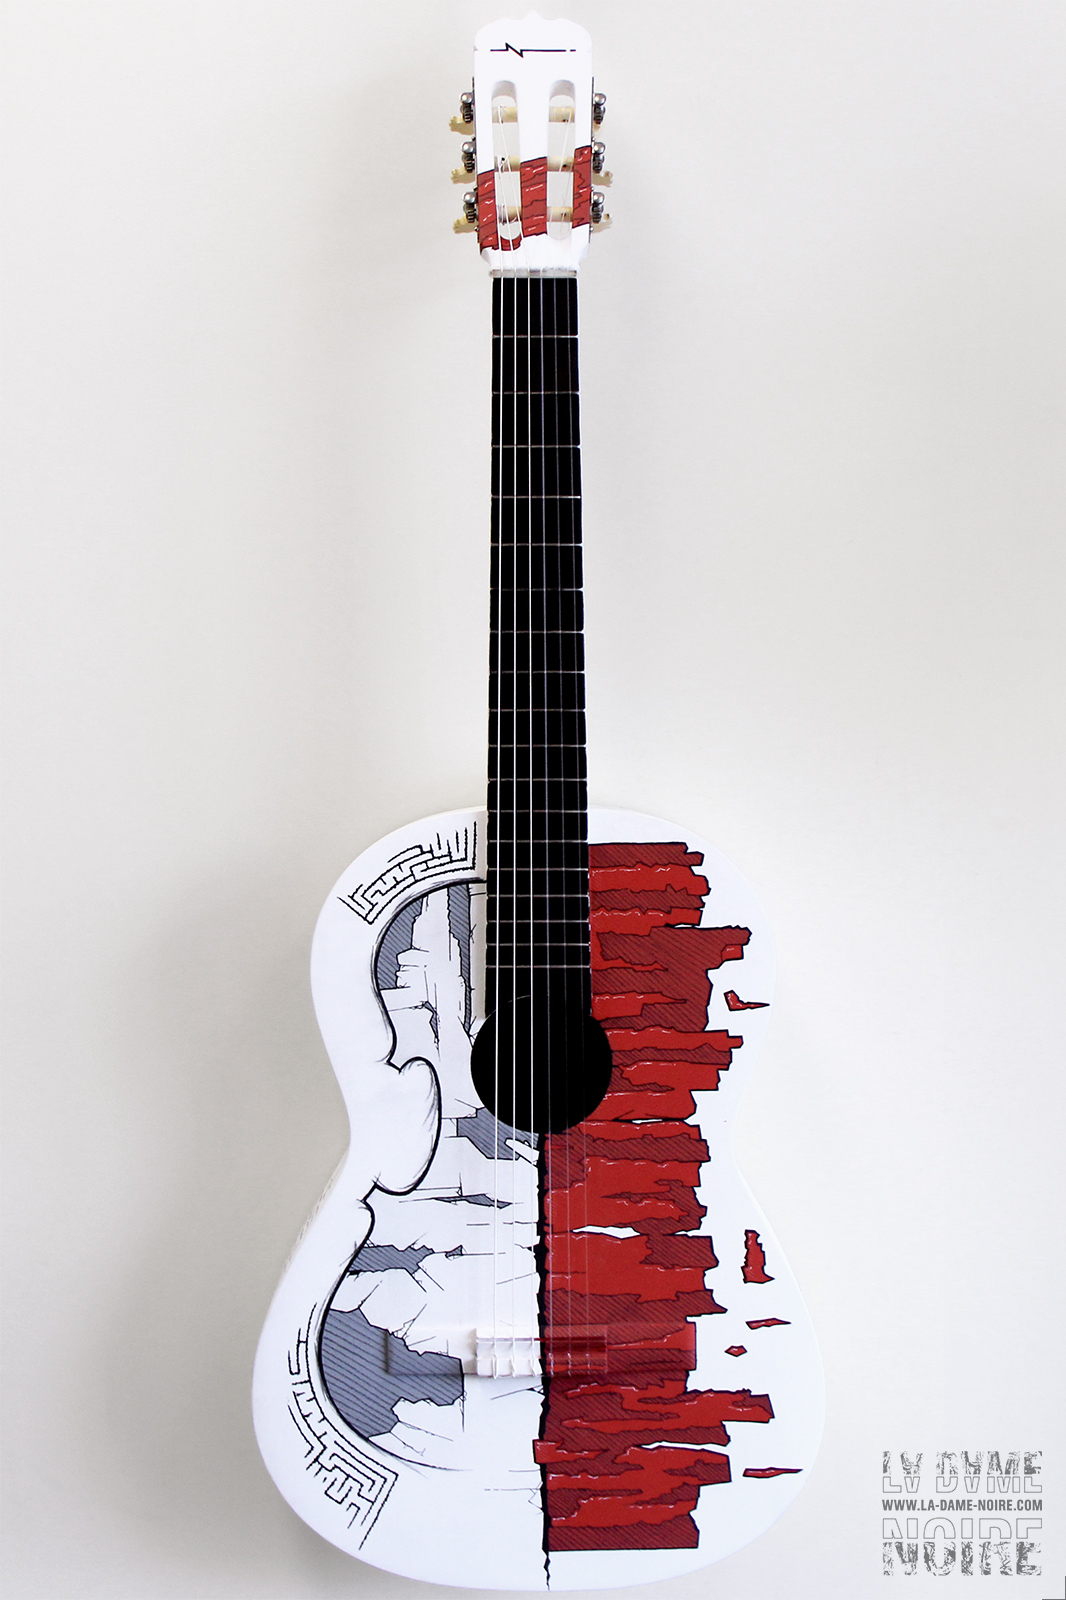 Front side of an acoustic guitar painted in white with the shape of a violin drawed on it